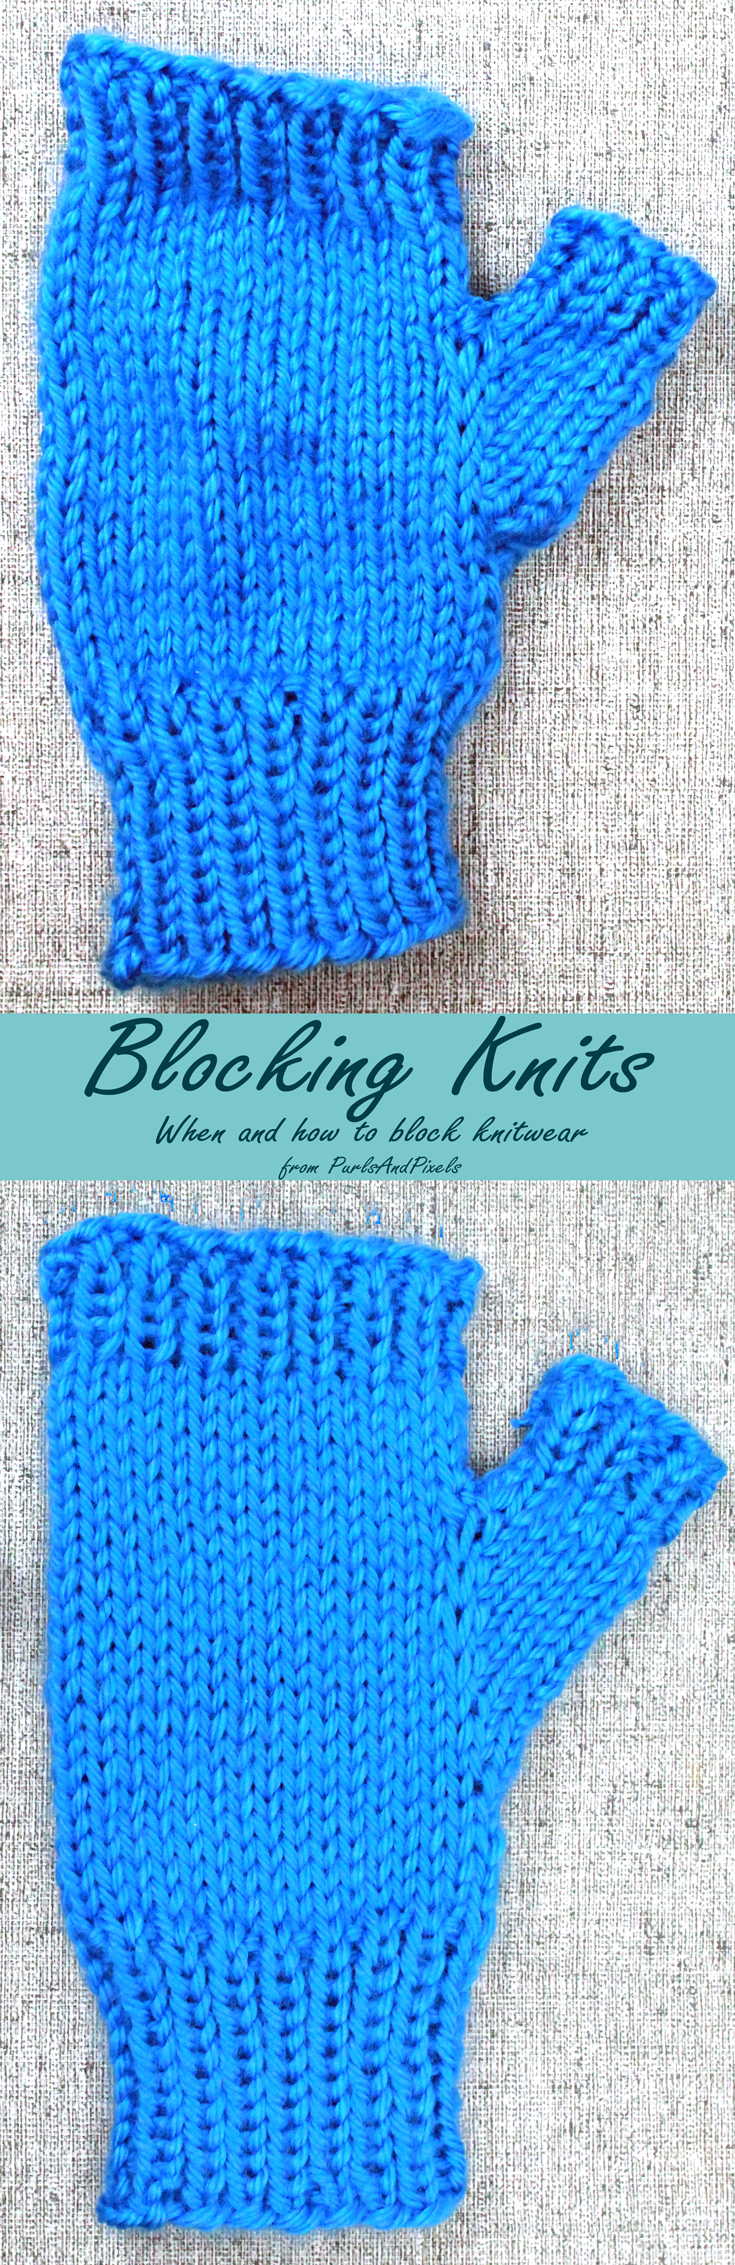 Blocking Knits, When and how to block knitwear, guide from PurlsAndPixels